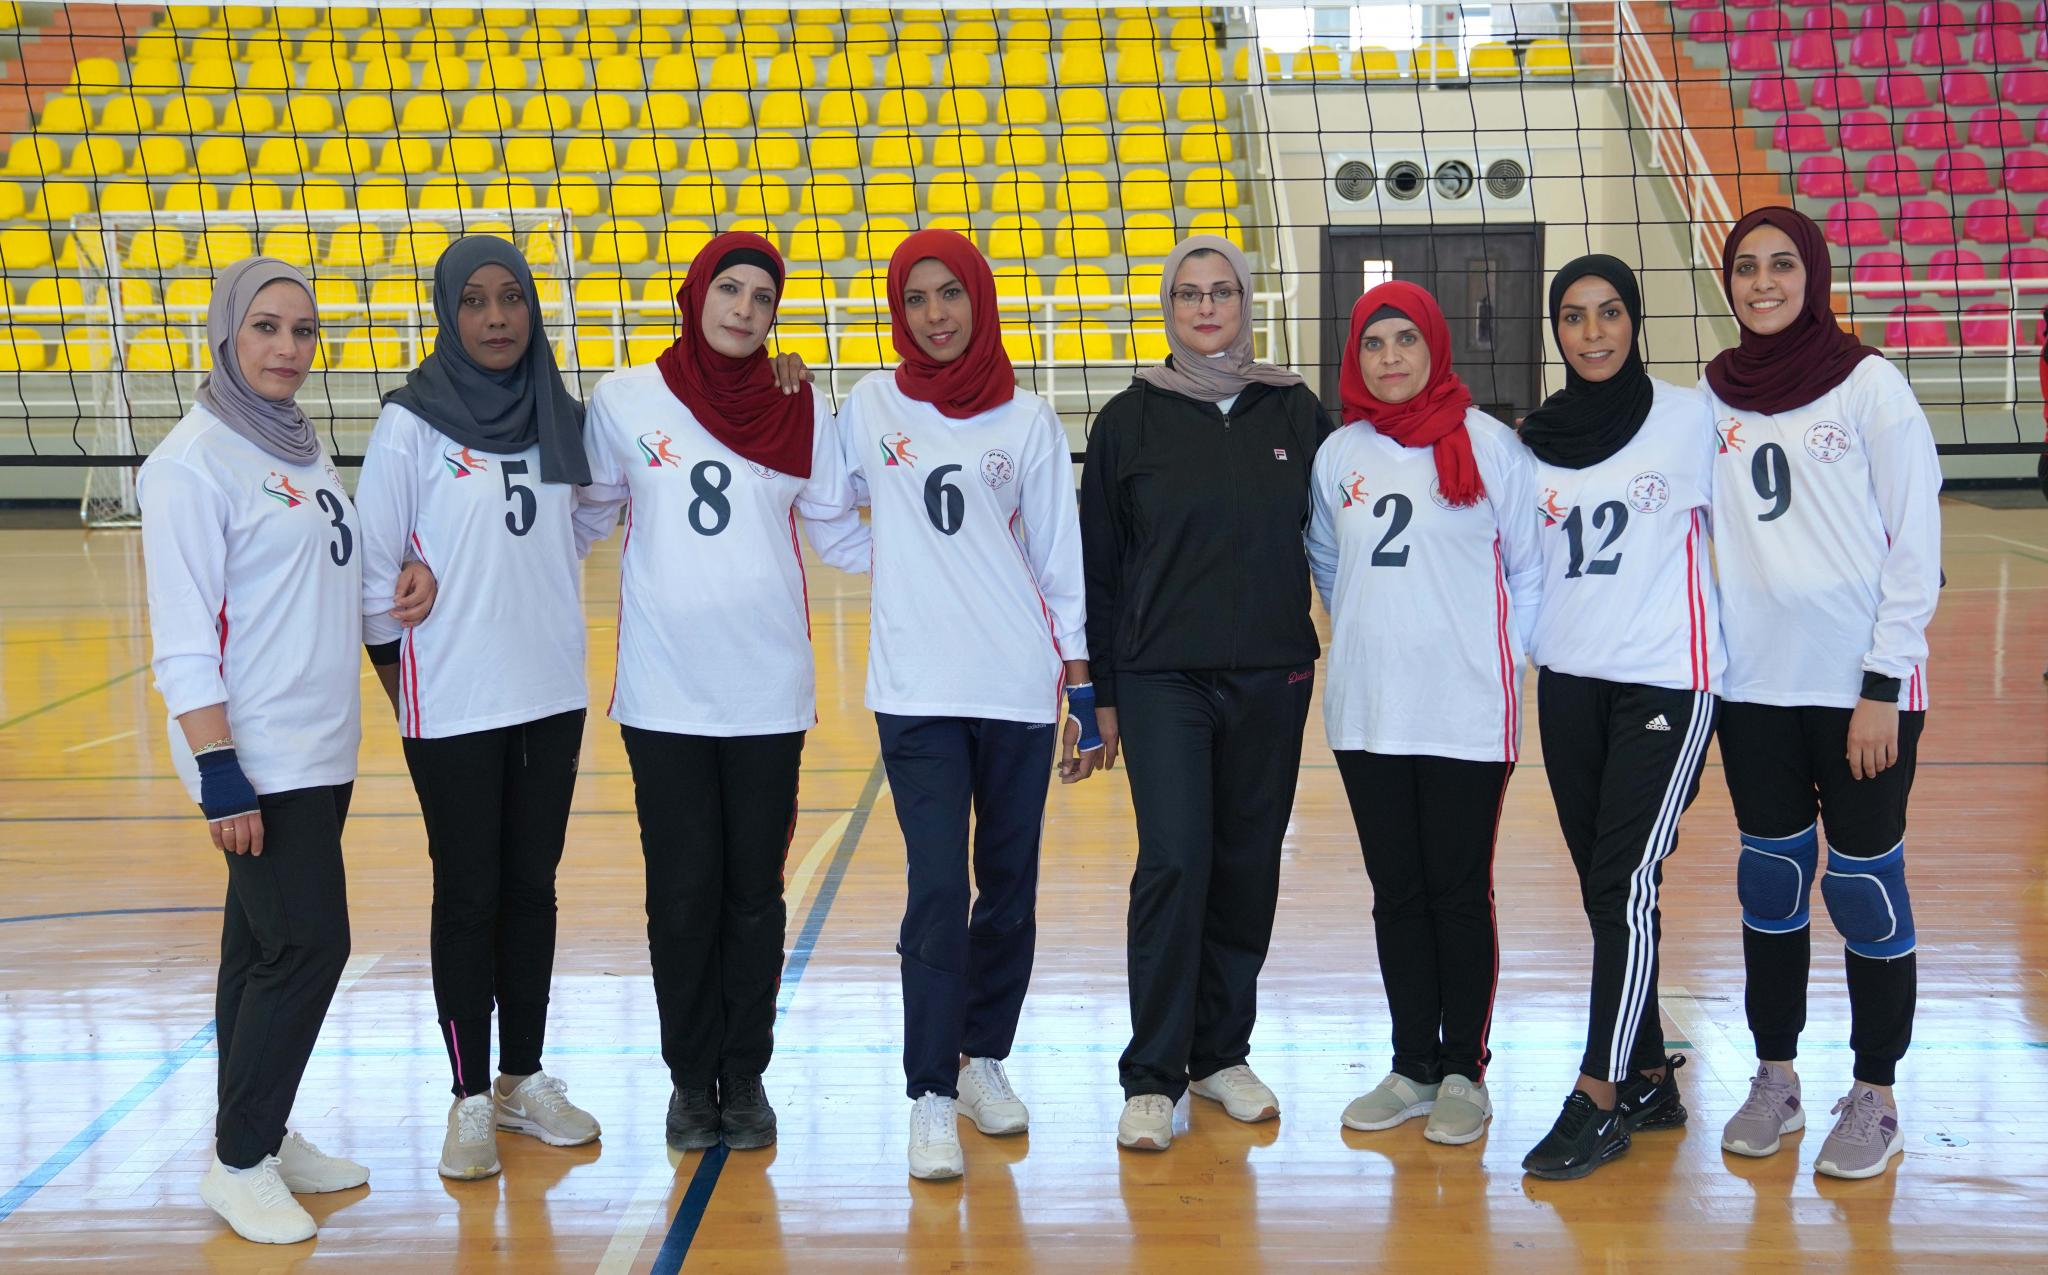 Women's volleyball match between AAUP team and Marj Ebin Amer team